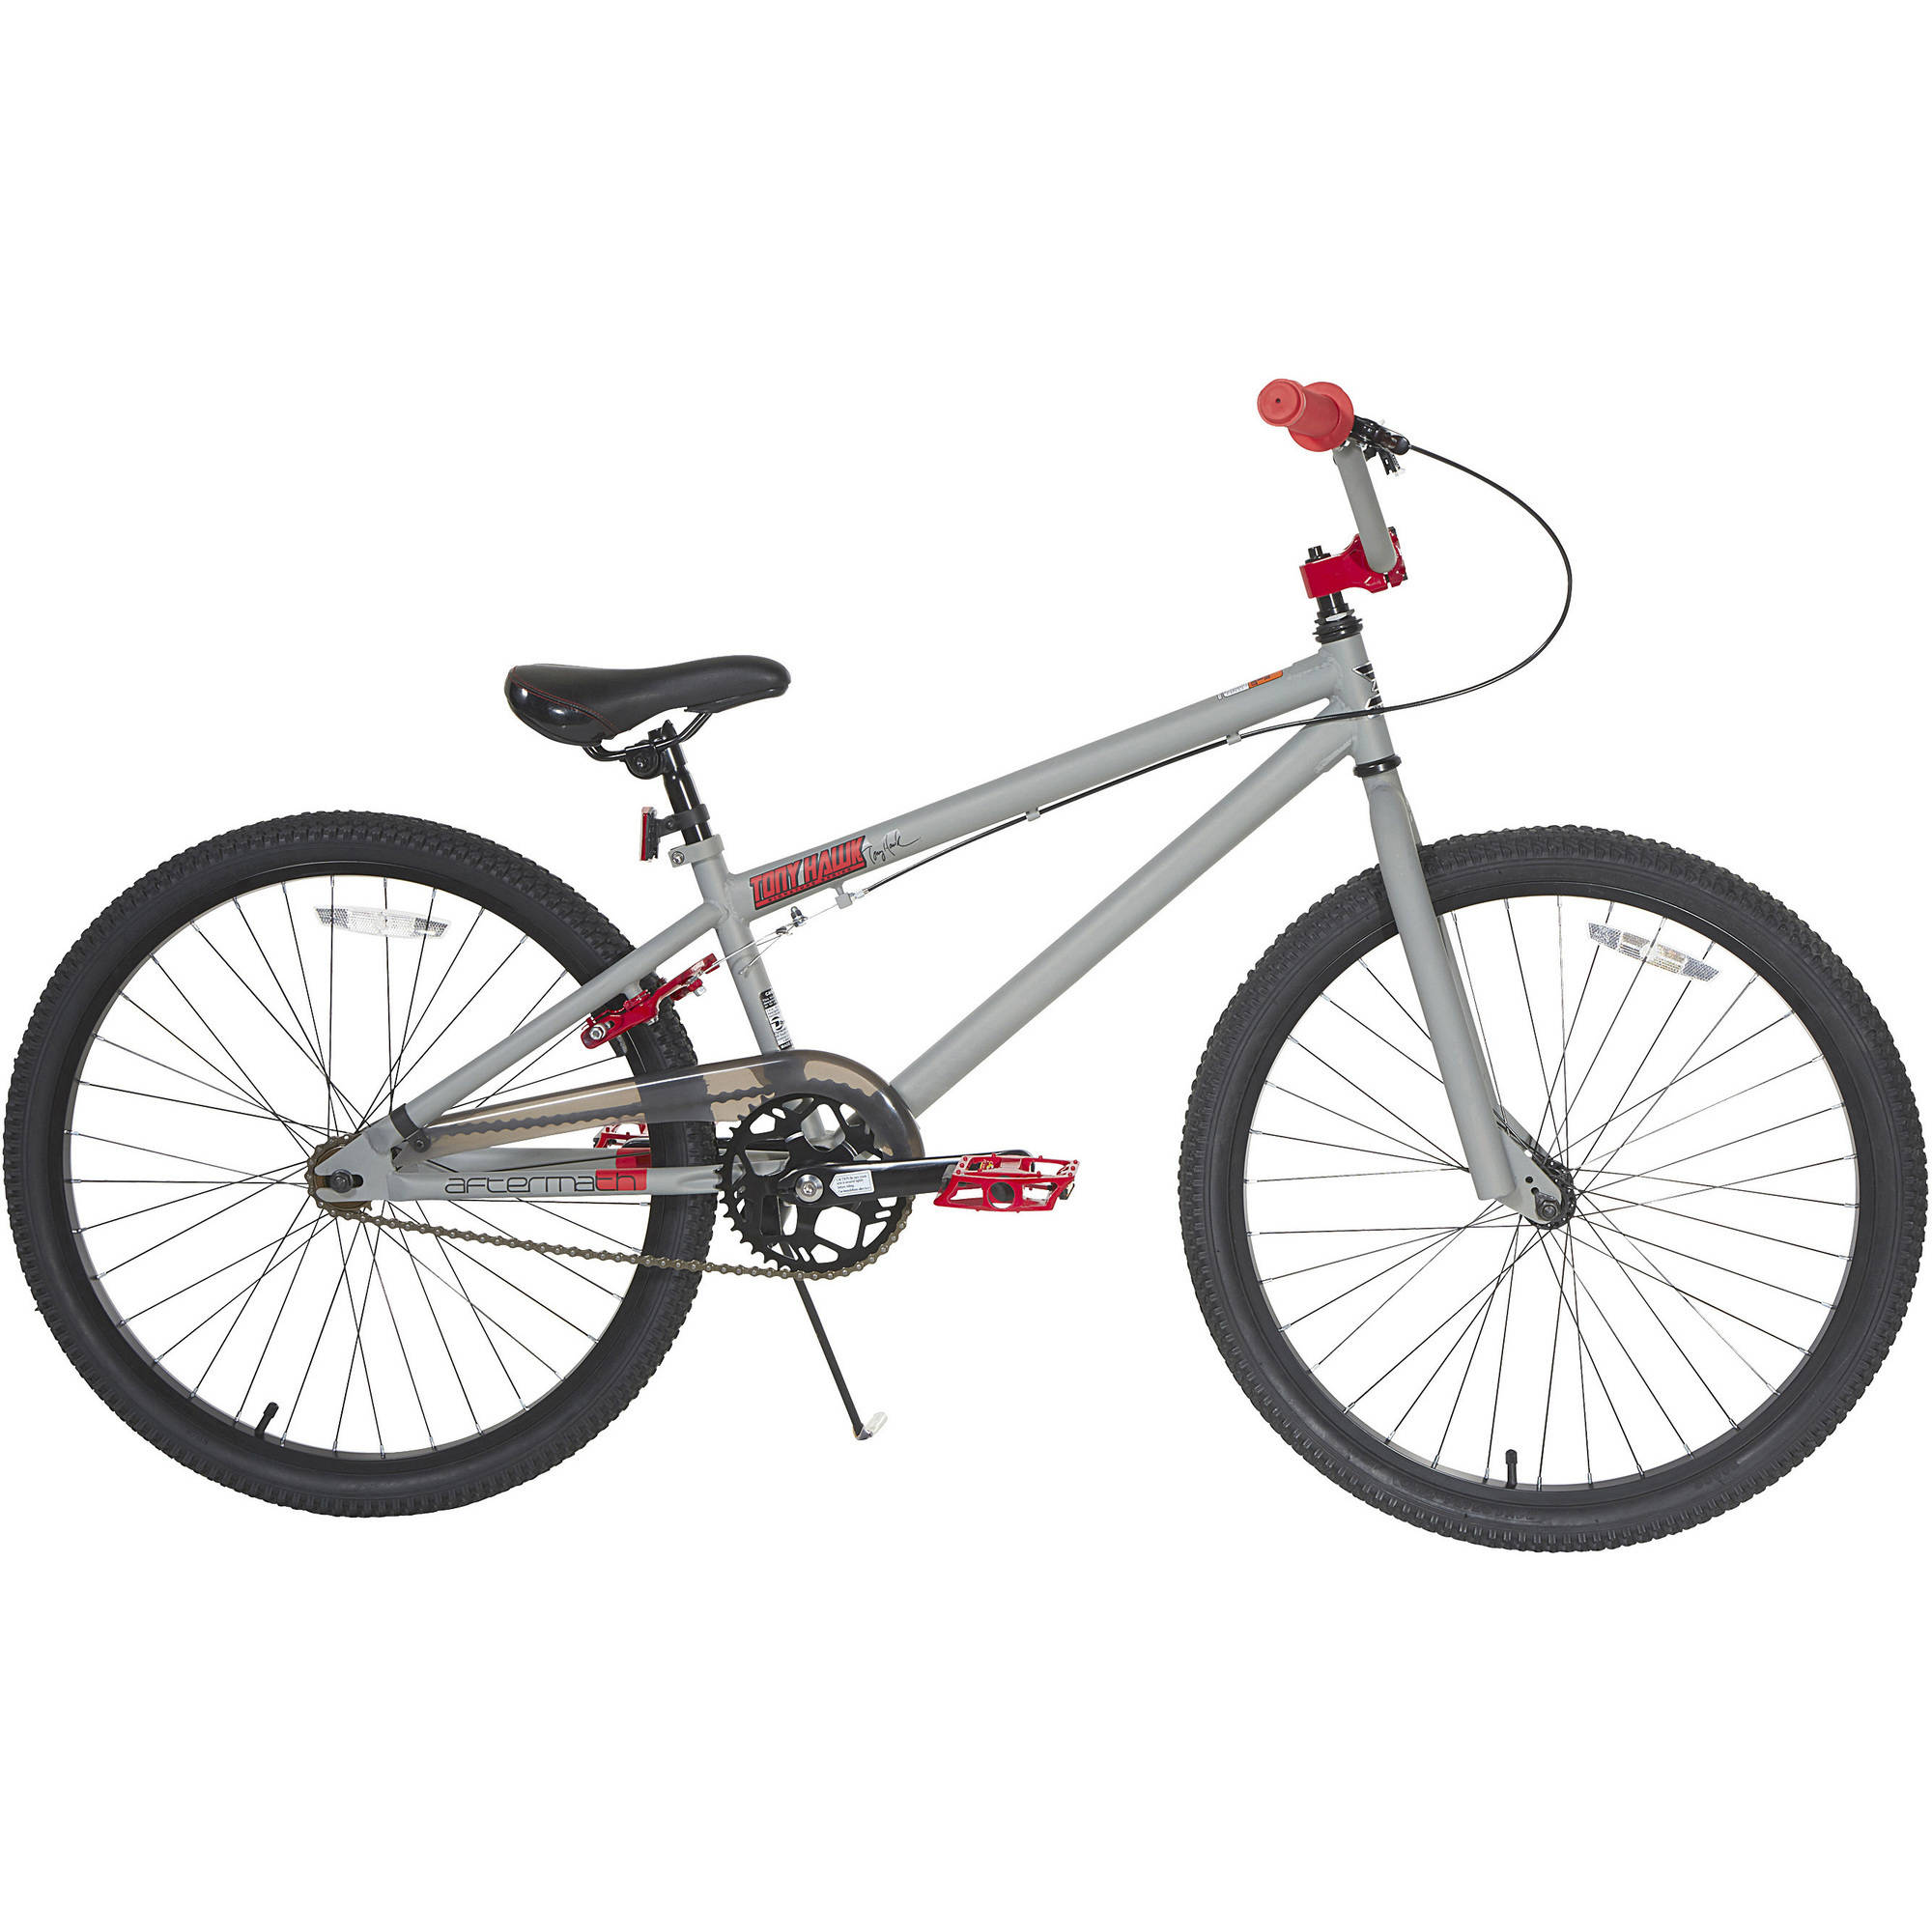 "Dynacraft 24"" Boys' Tony Hawk Aftermath Bike"